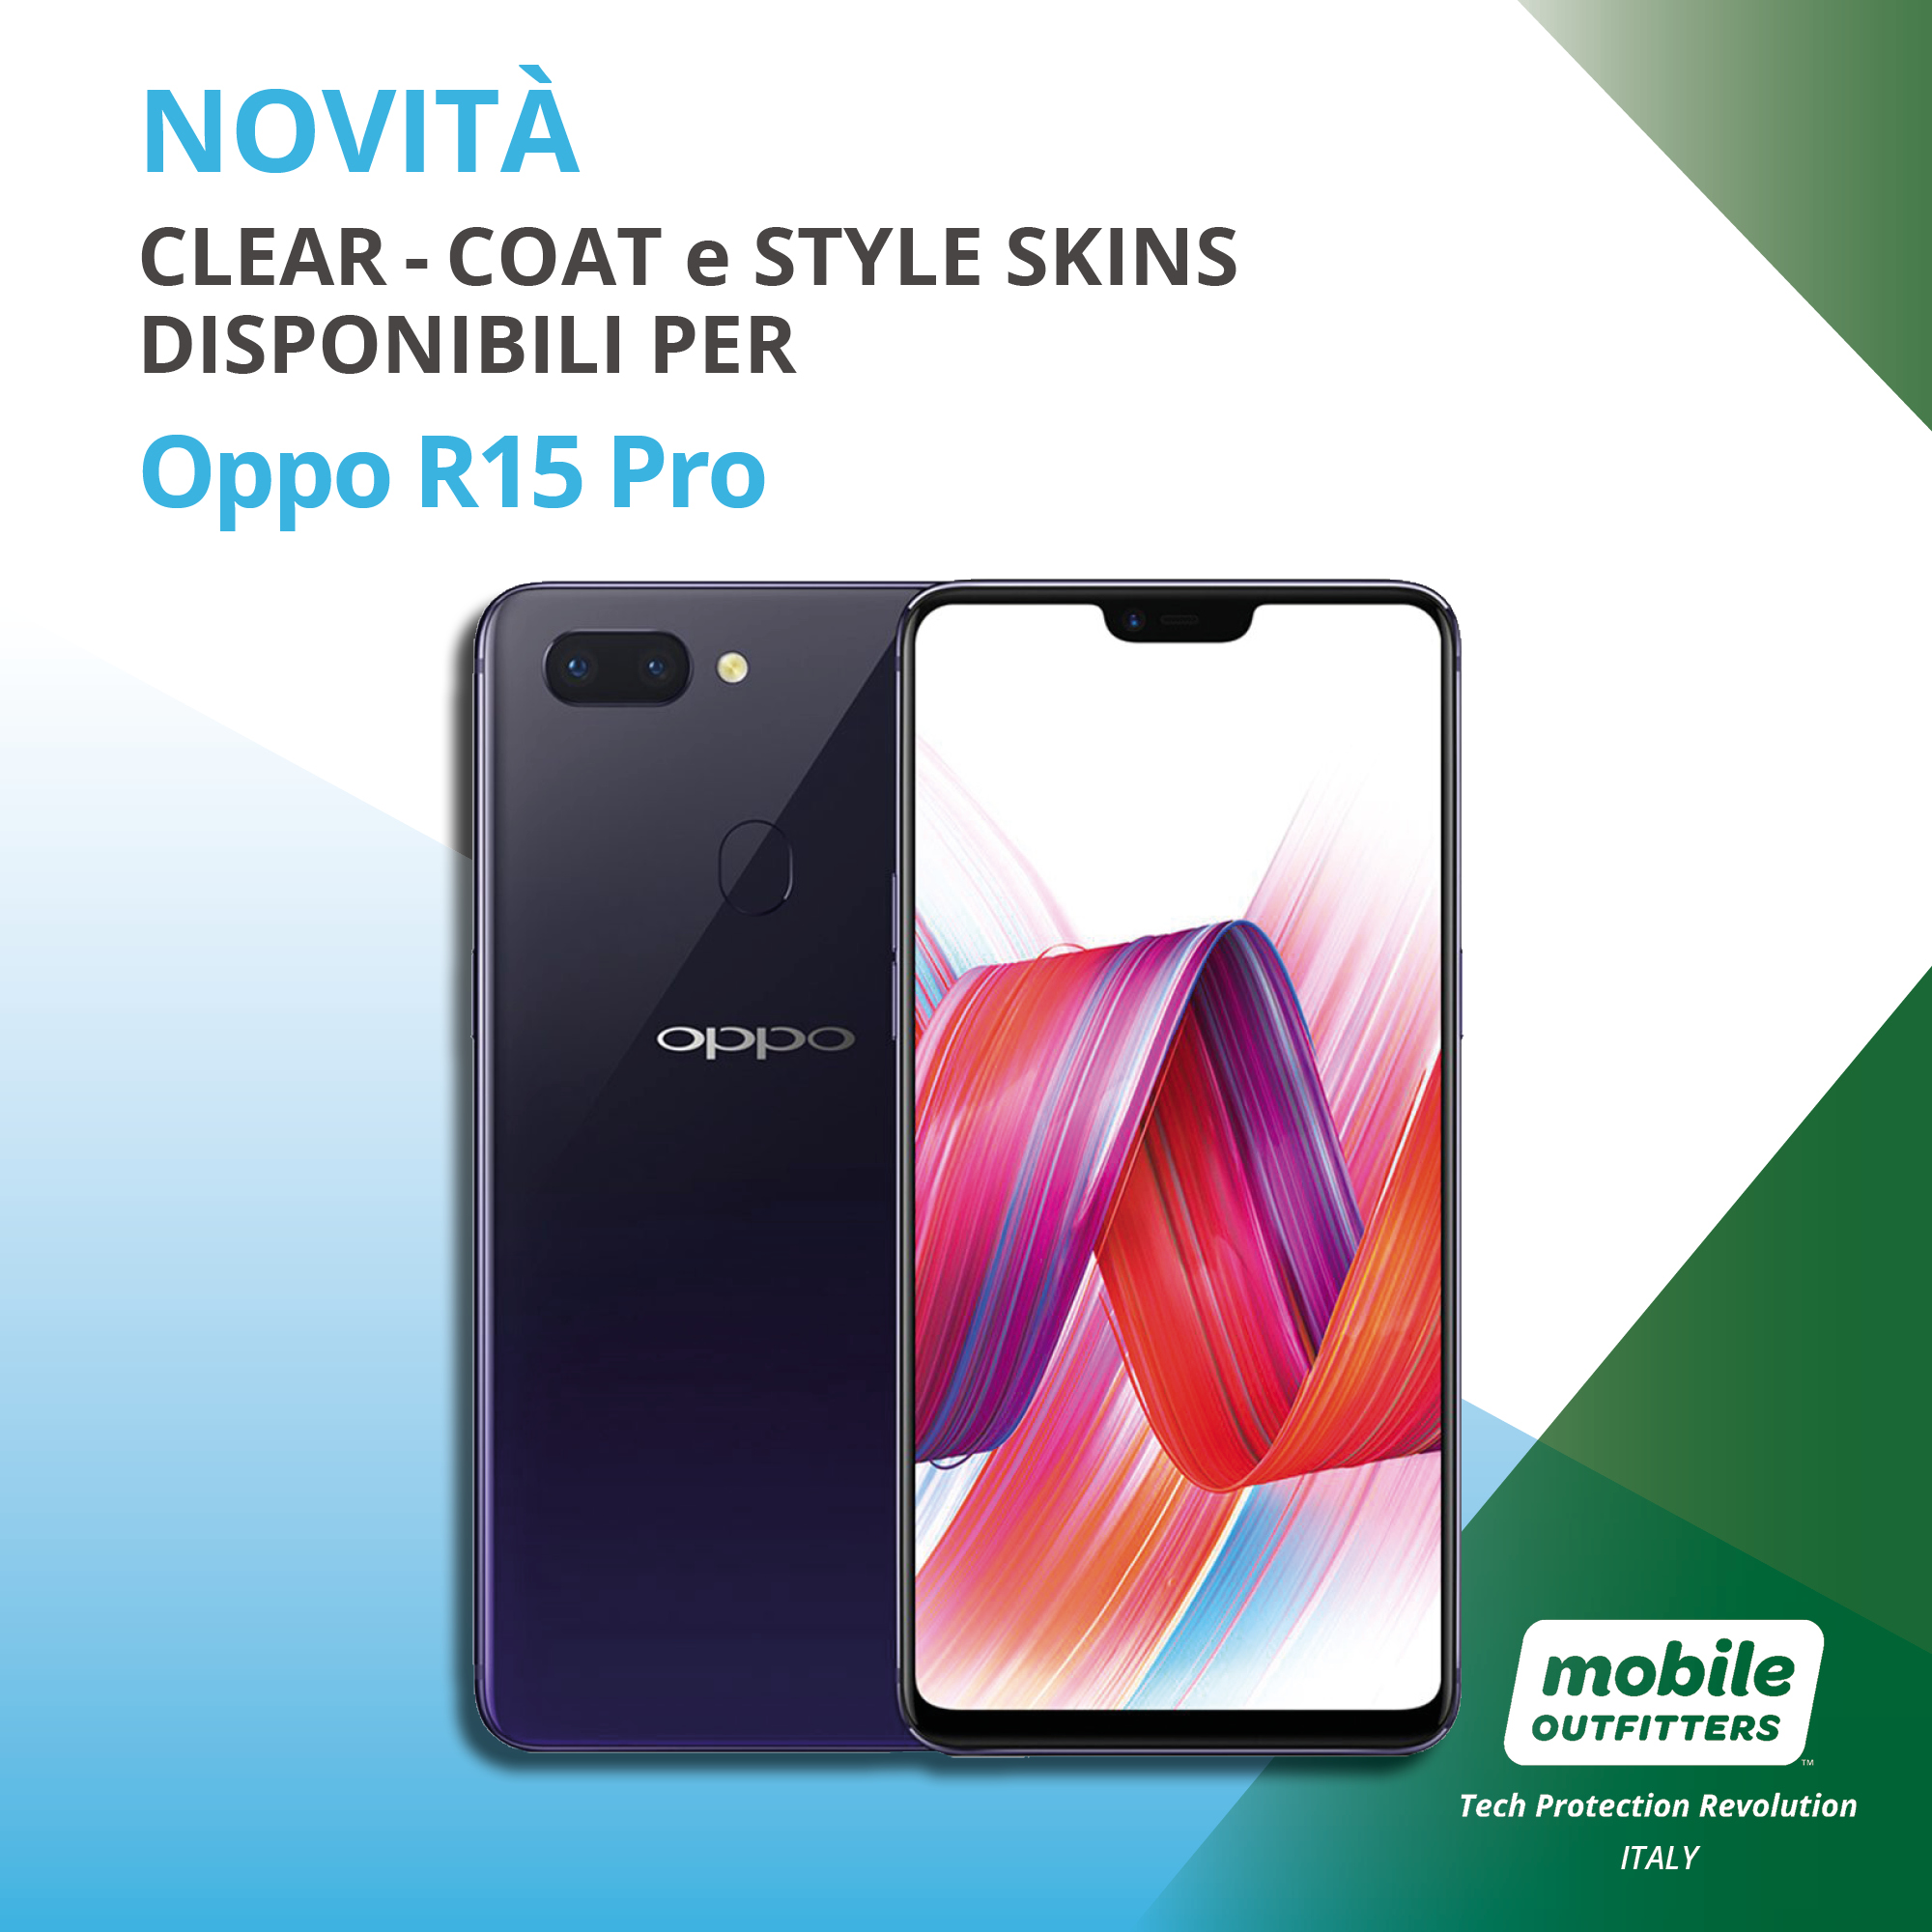 07_06_MOBILE OUTFITTERS_OPPO R15 PRO